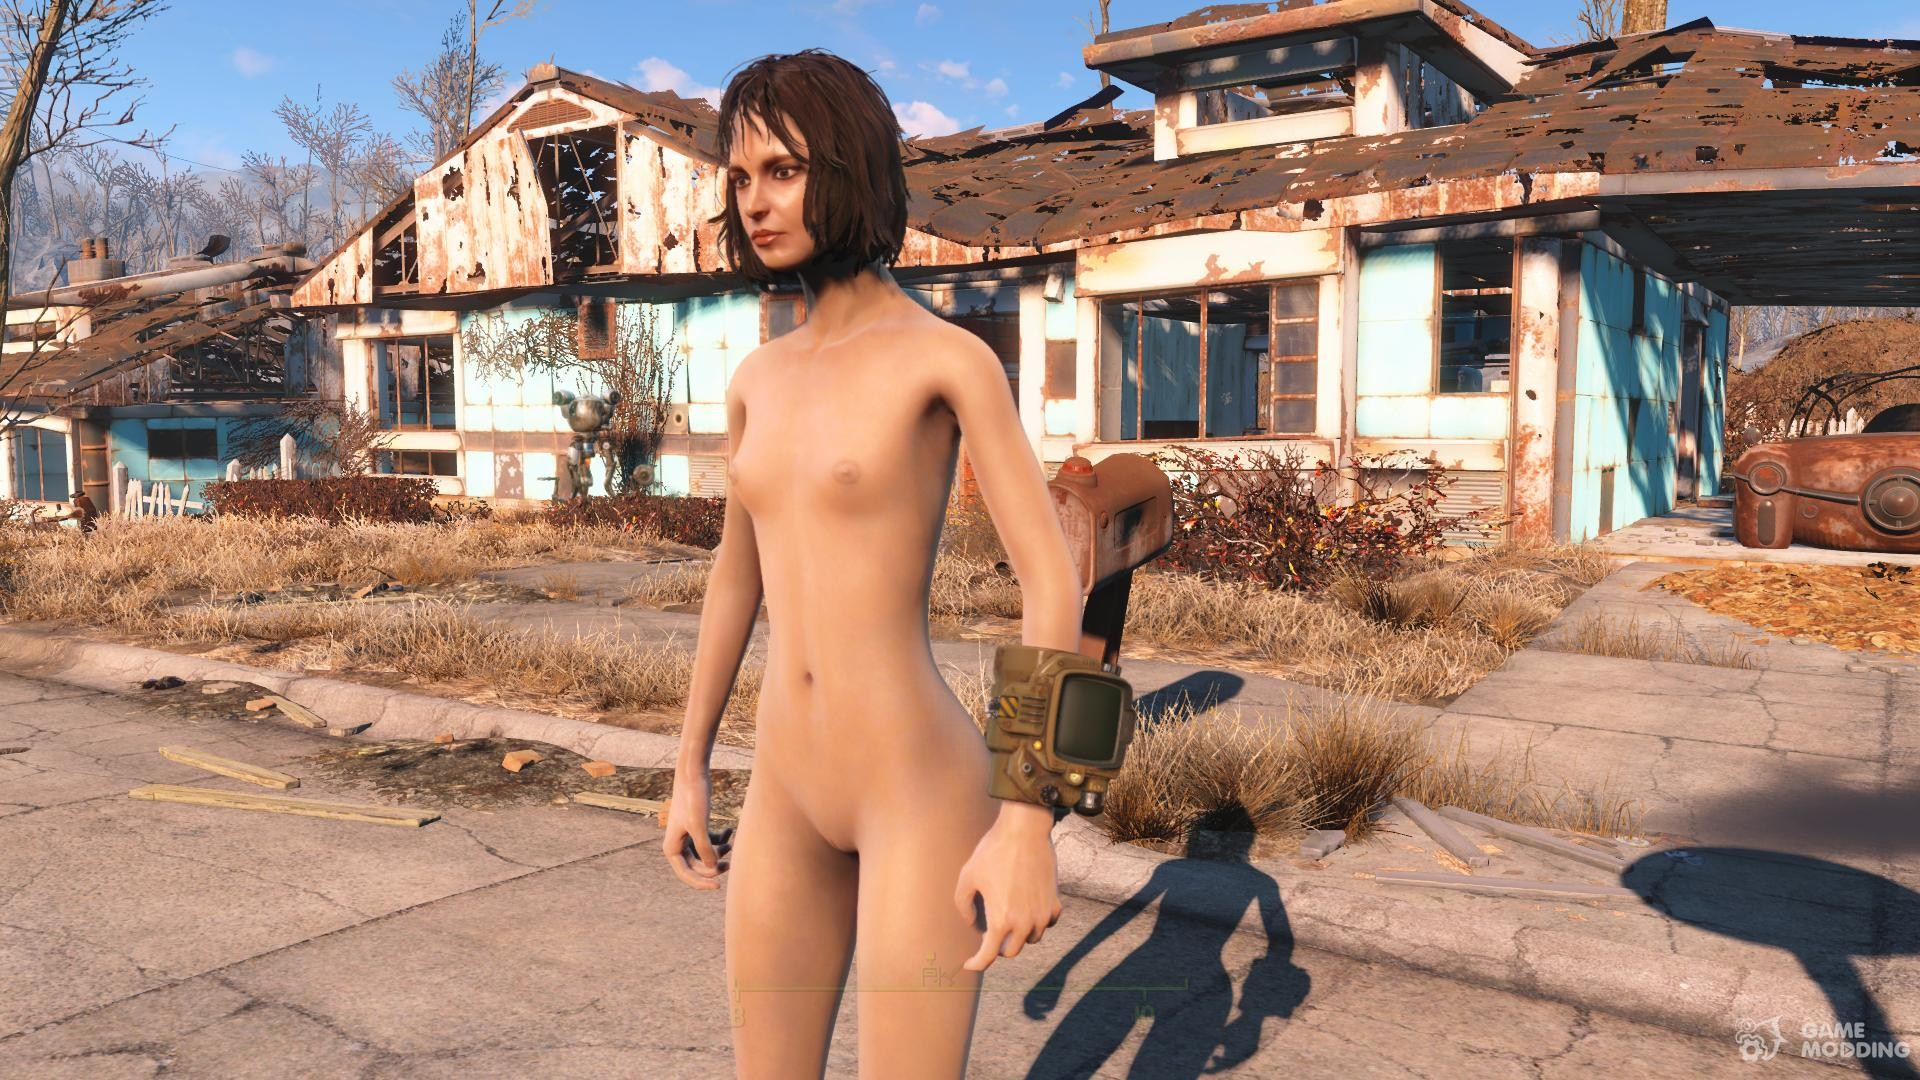 Video game naked mod pics nsfw photos